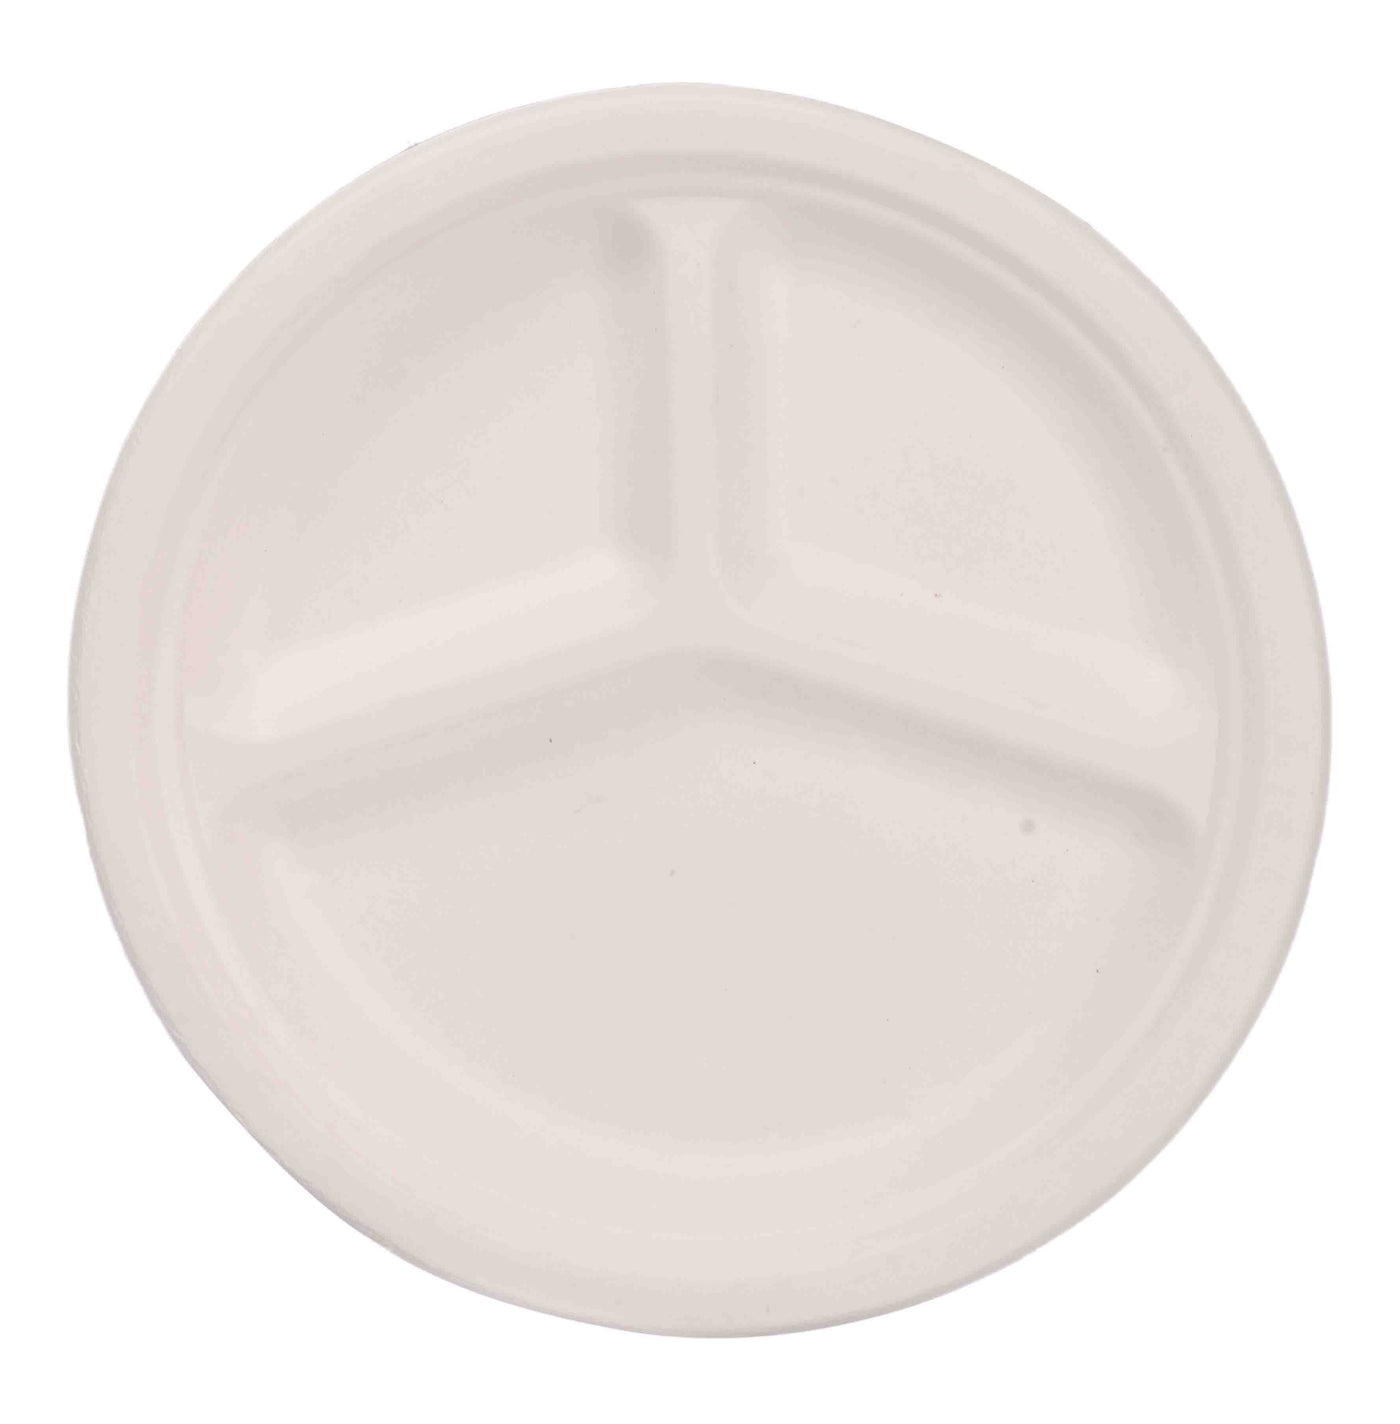 3 Compartment disposable plates  sc 1 st  Pappco Greenware & Eco friendly 3 Compartment disposable plates